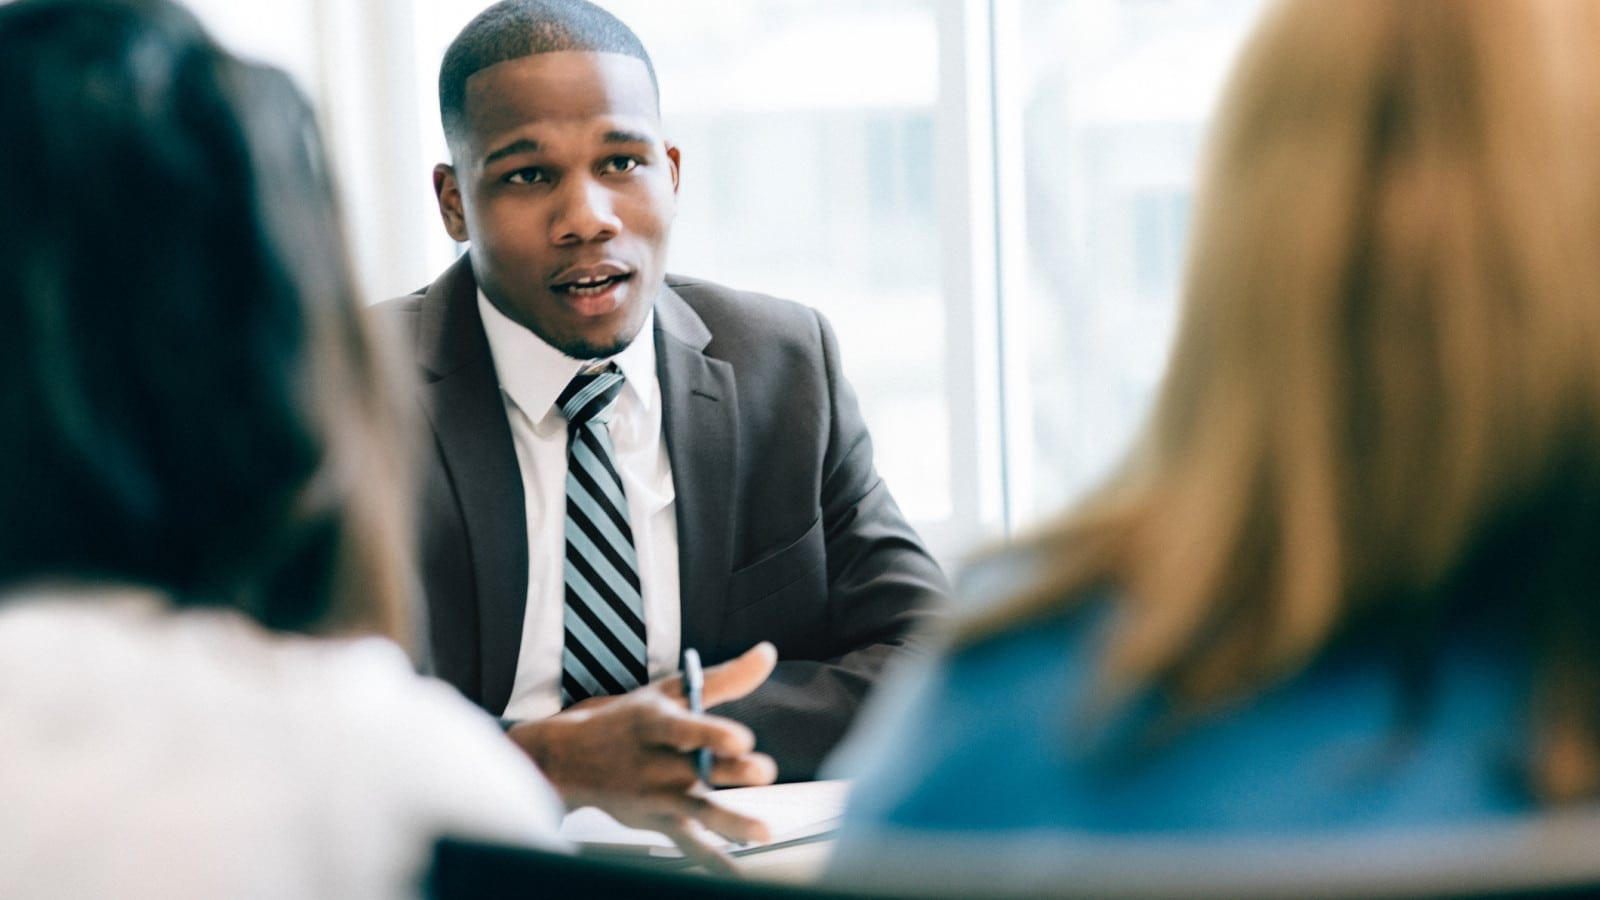 Lawyer Meeting Privately With Clients Stock Photo